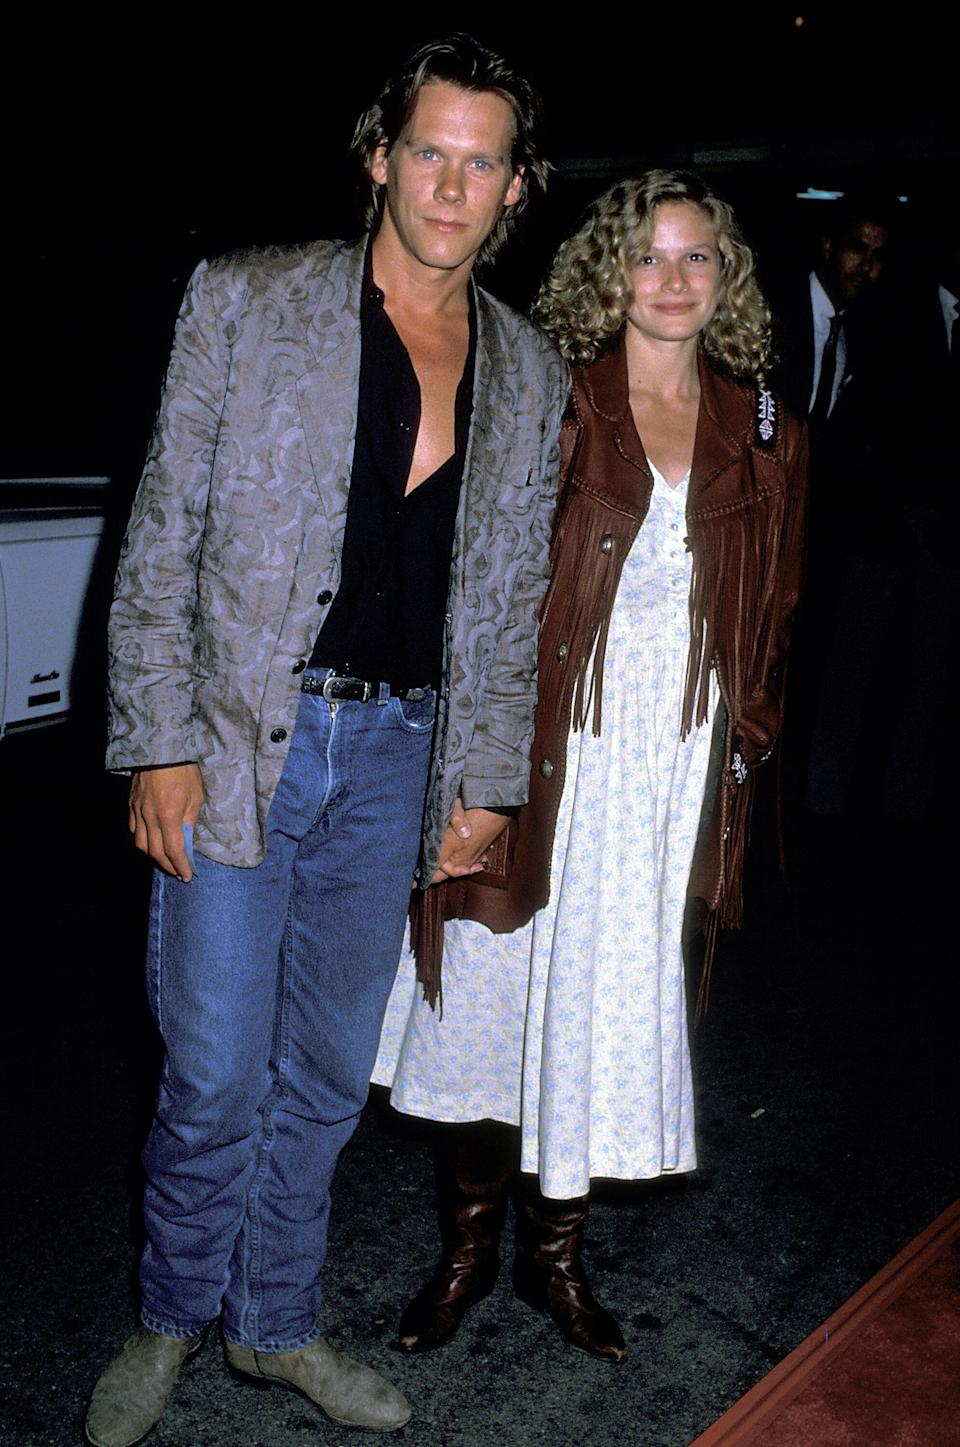 """Bacon and Sedgwick at the """"Ghostbusters II"""" Hollywood premiere."""